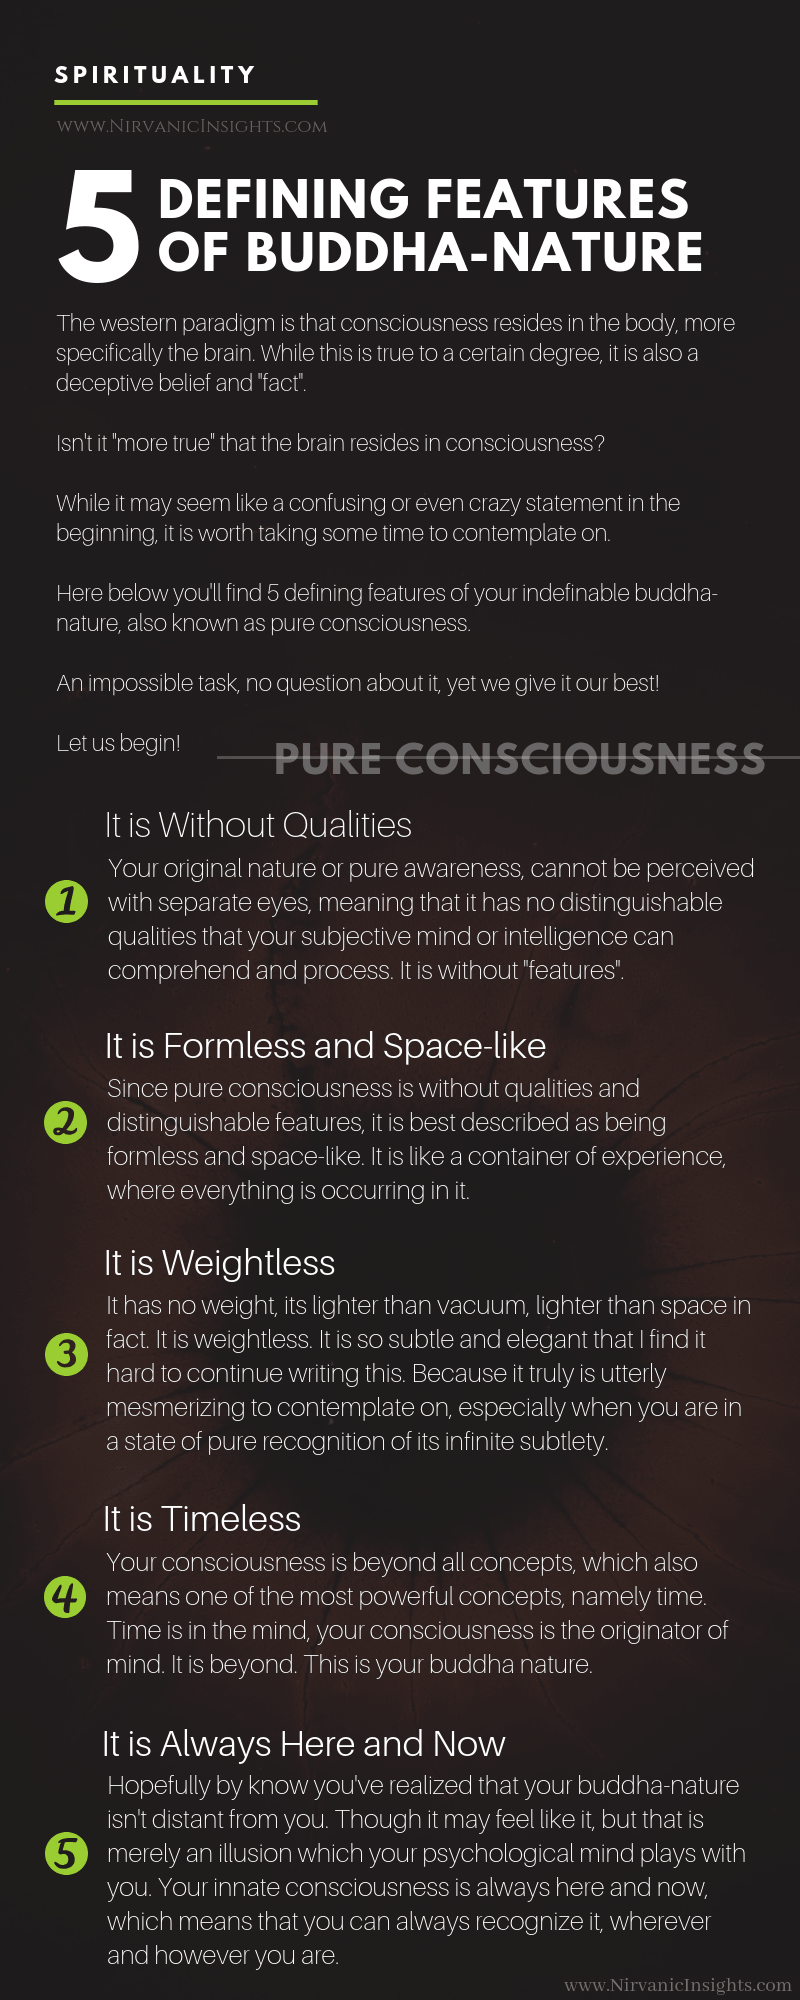 Consciousness: 5 Defining Features of Buddha-Nature (infographic)